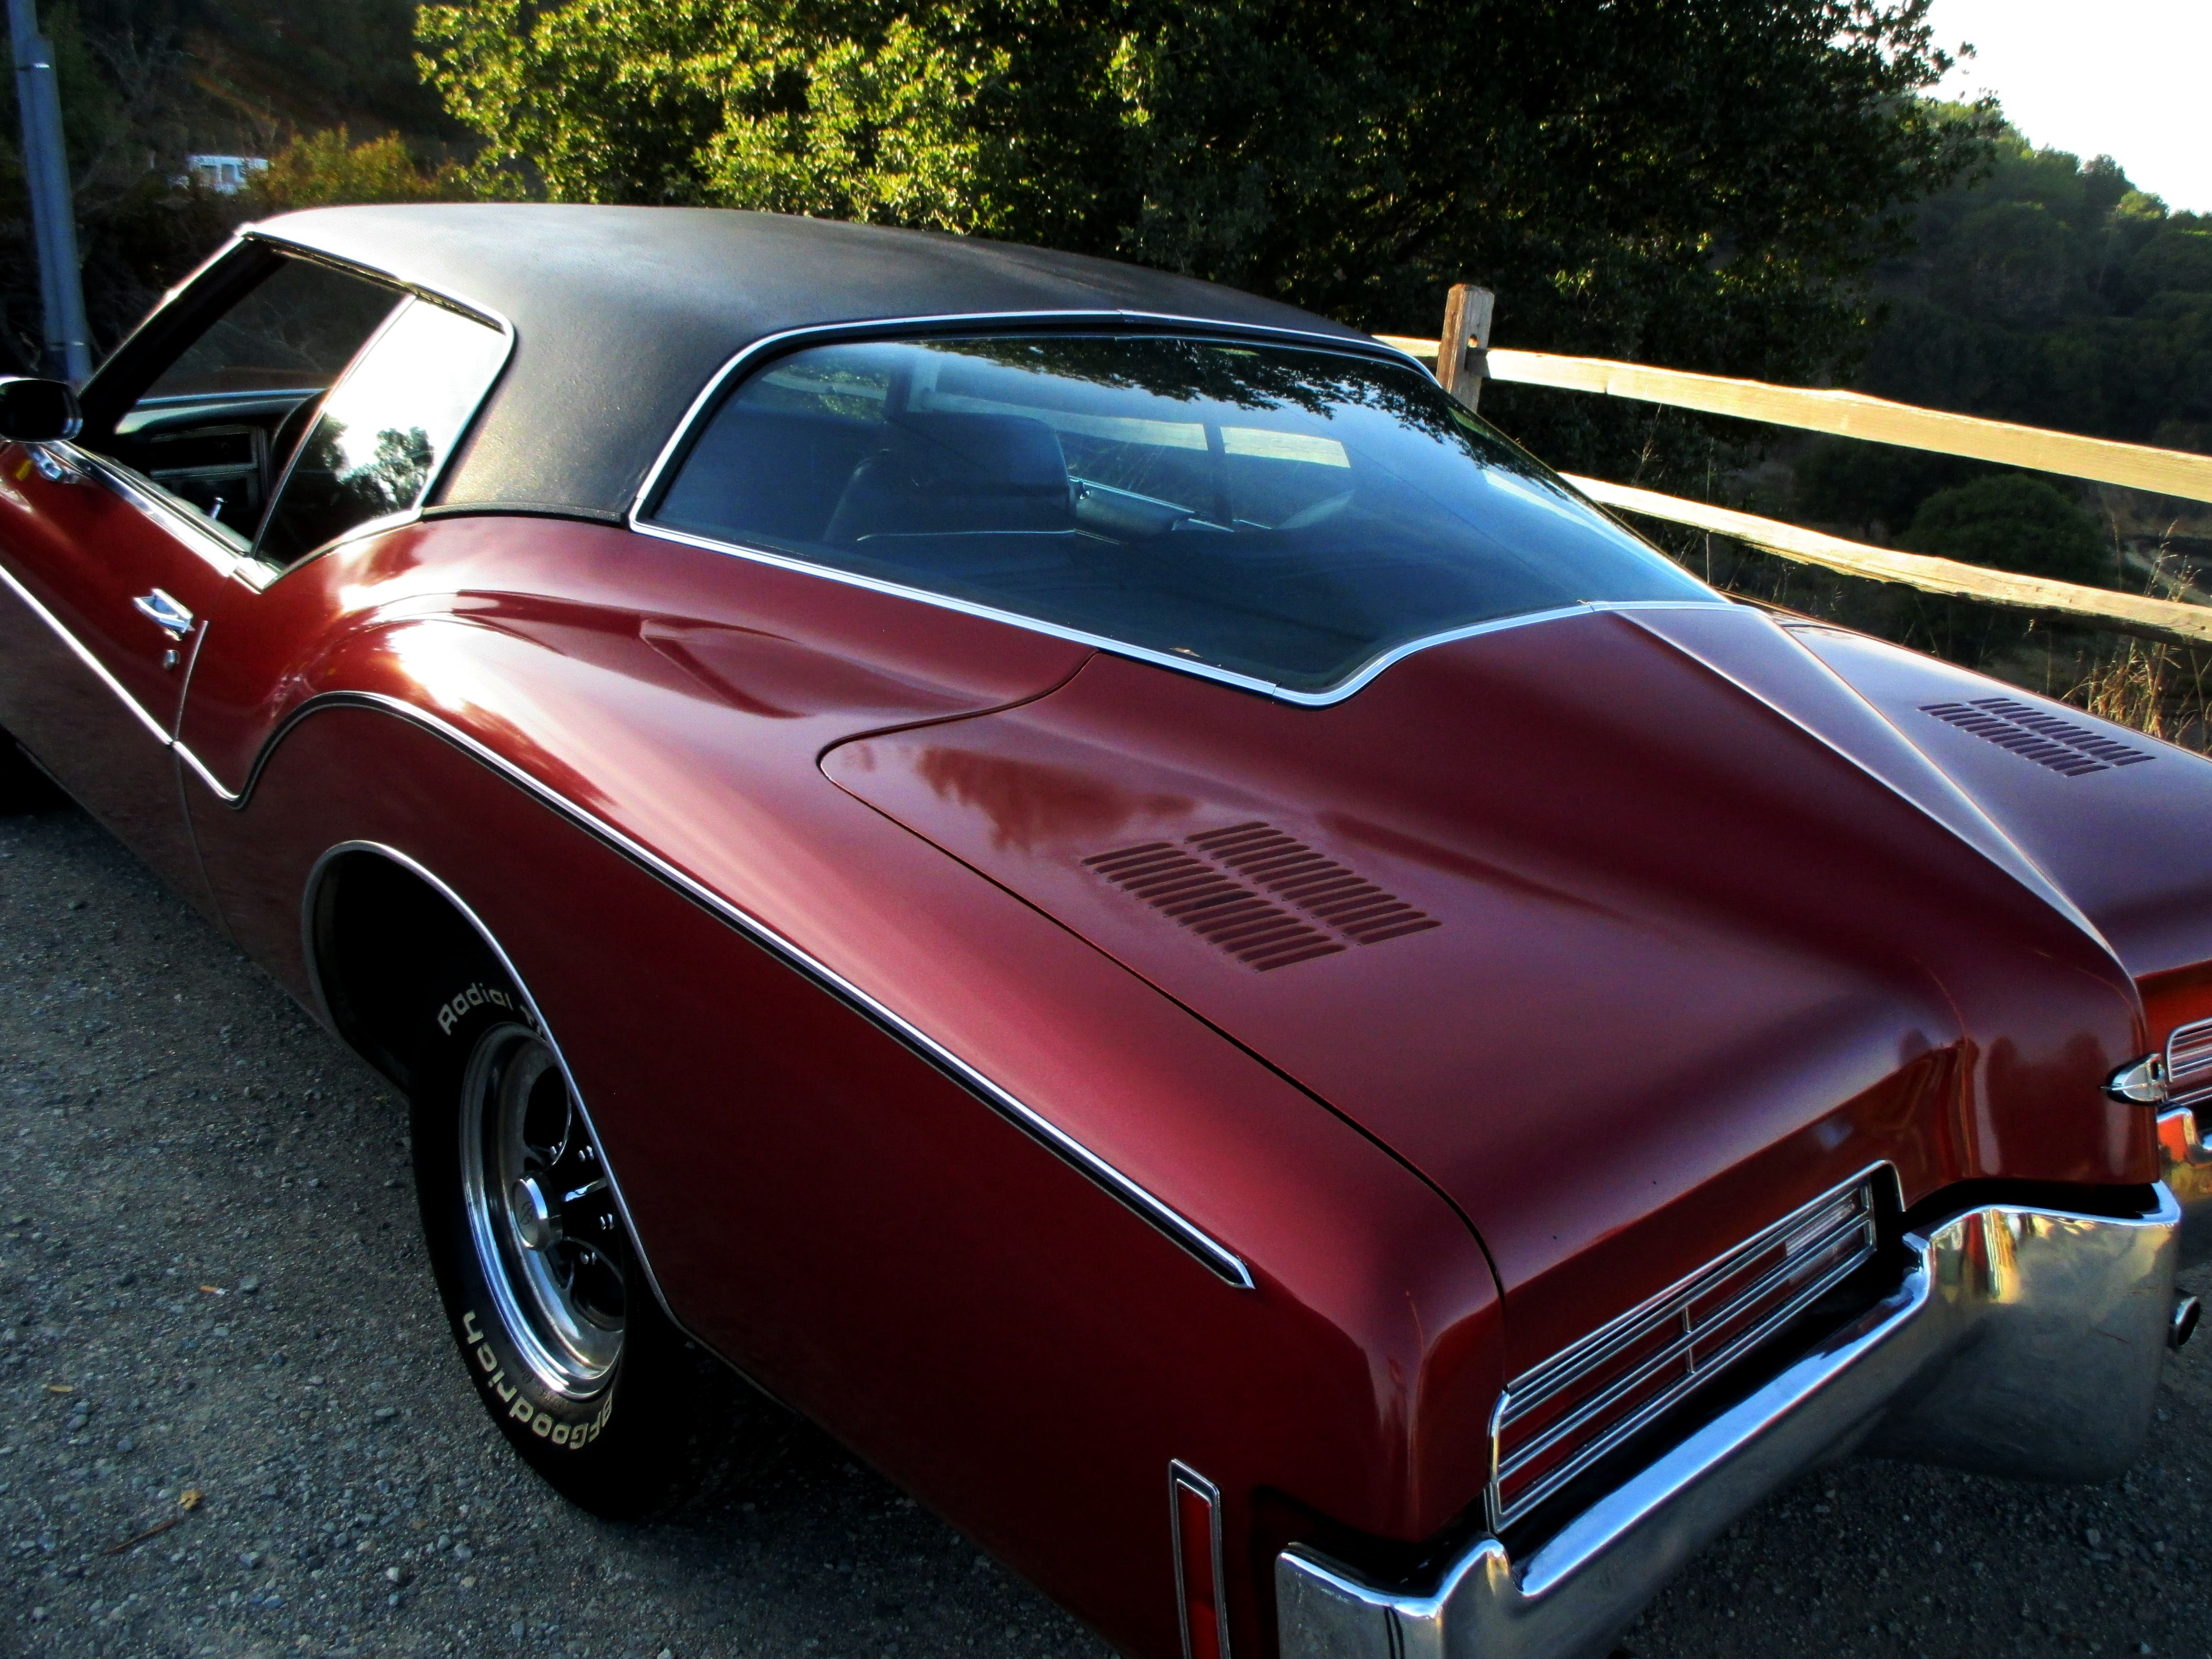 1971 Buick Riviera Gs Buick Riviera Chevy Muscle Cars Buick